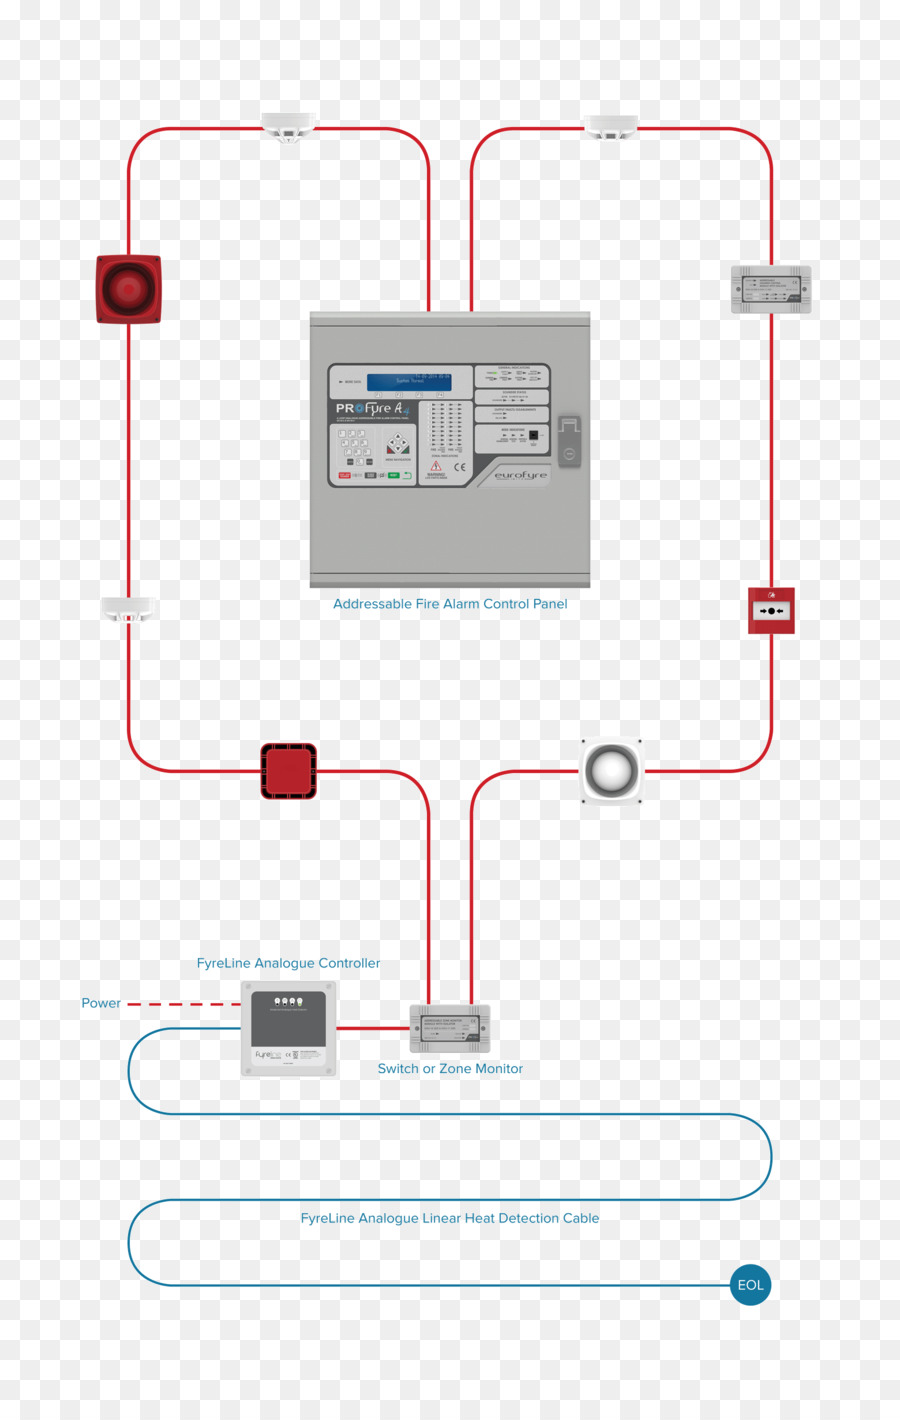 Fire alarm control panel Fire alarm system Heat detector Security Alarms &  Systems Wiring diagram - escalator